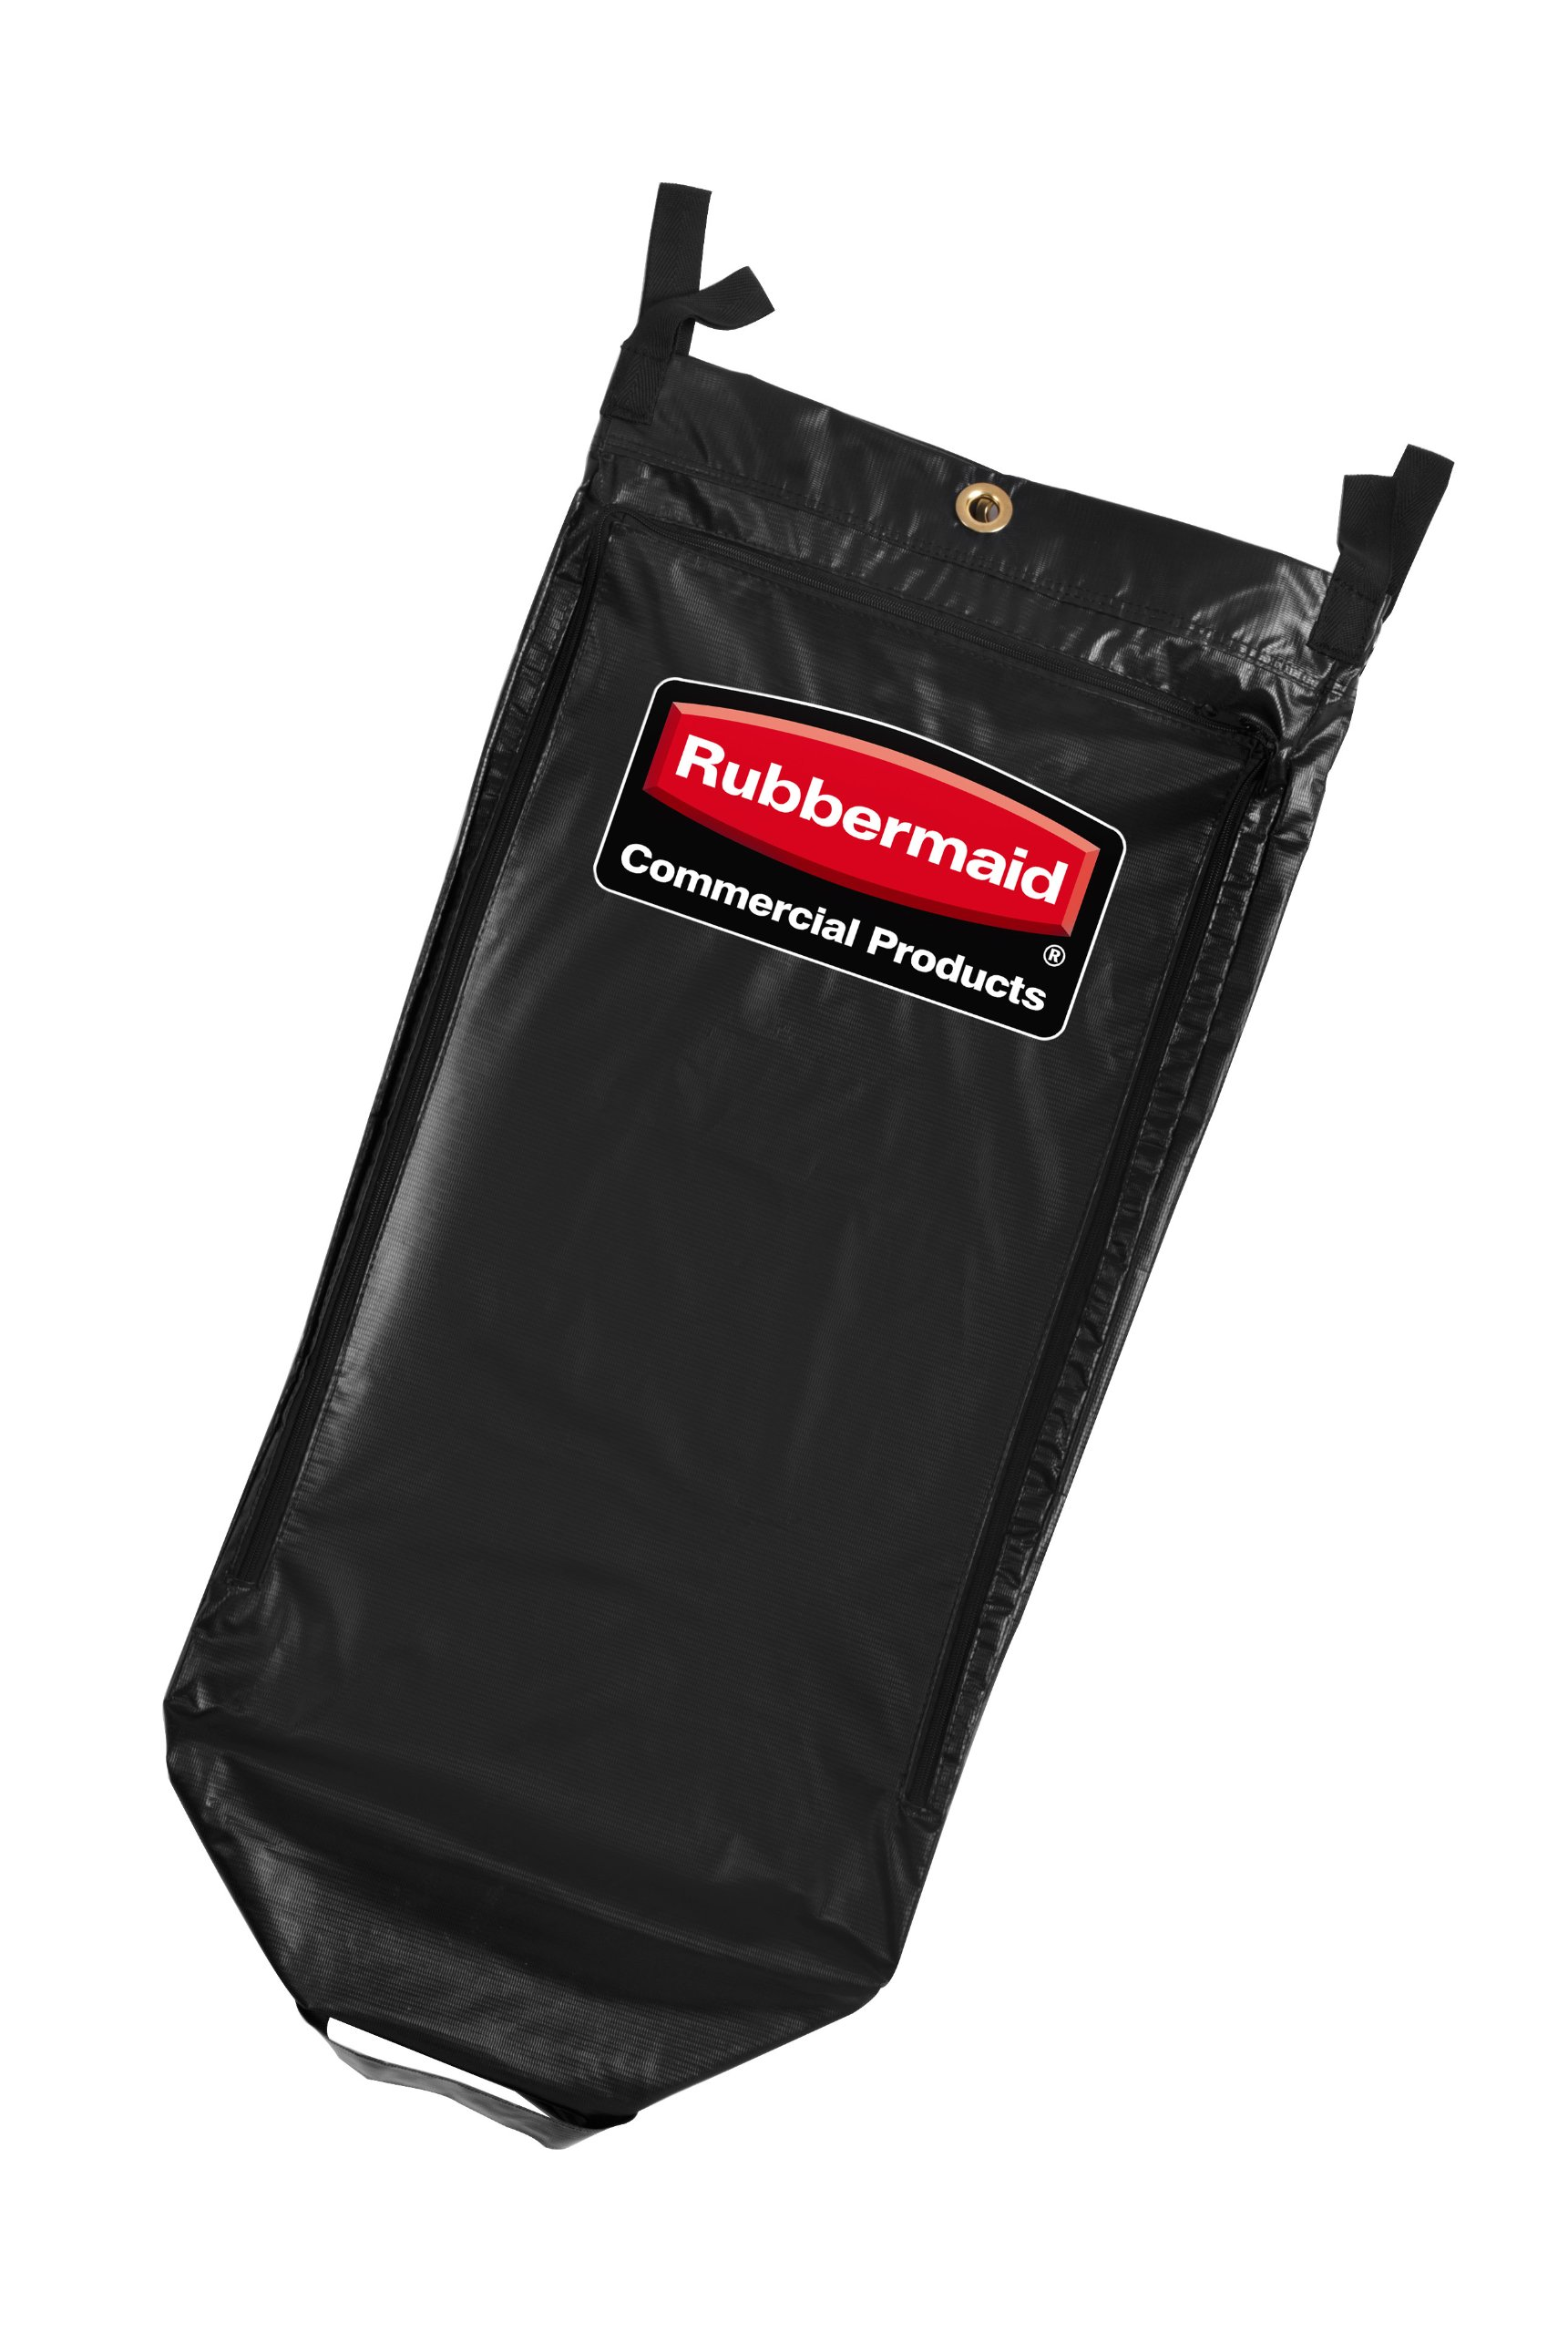 Rubbermaid Commercial 1851454 Executive Janitorial Cleaning Cart High-Capacity Vinyl Bag, 34-gallon by Rubbermaid Commercial Products